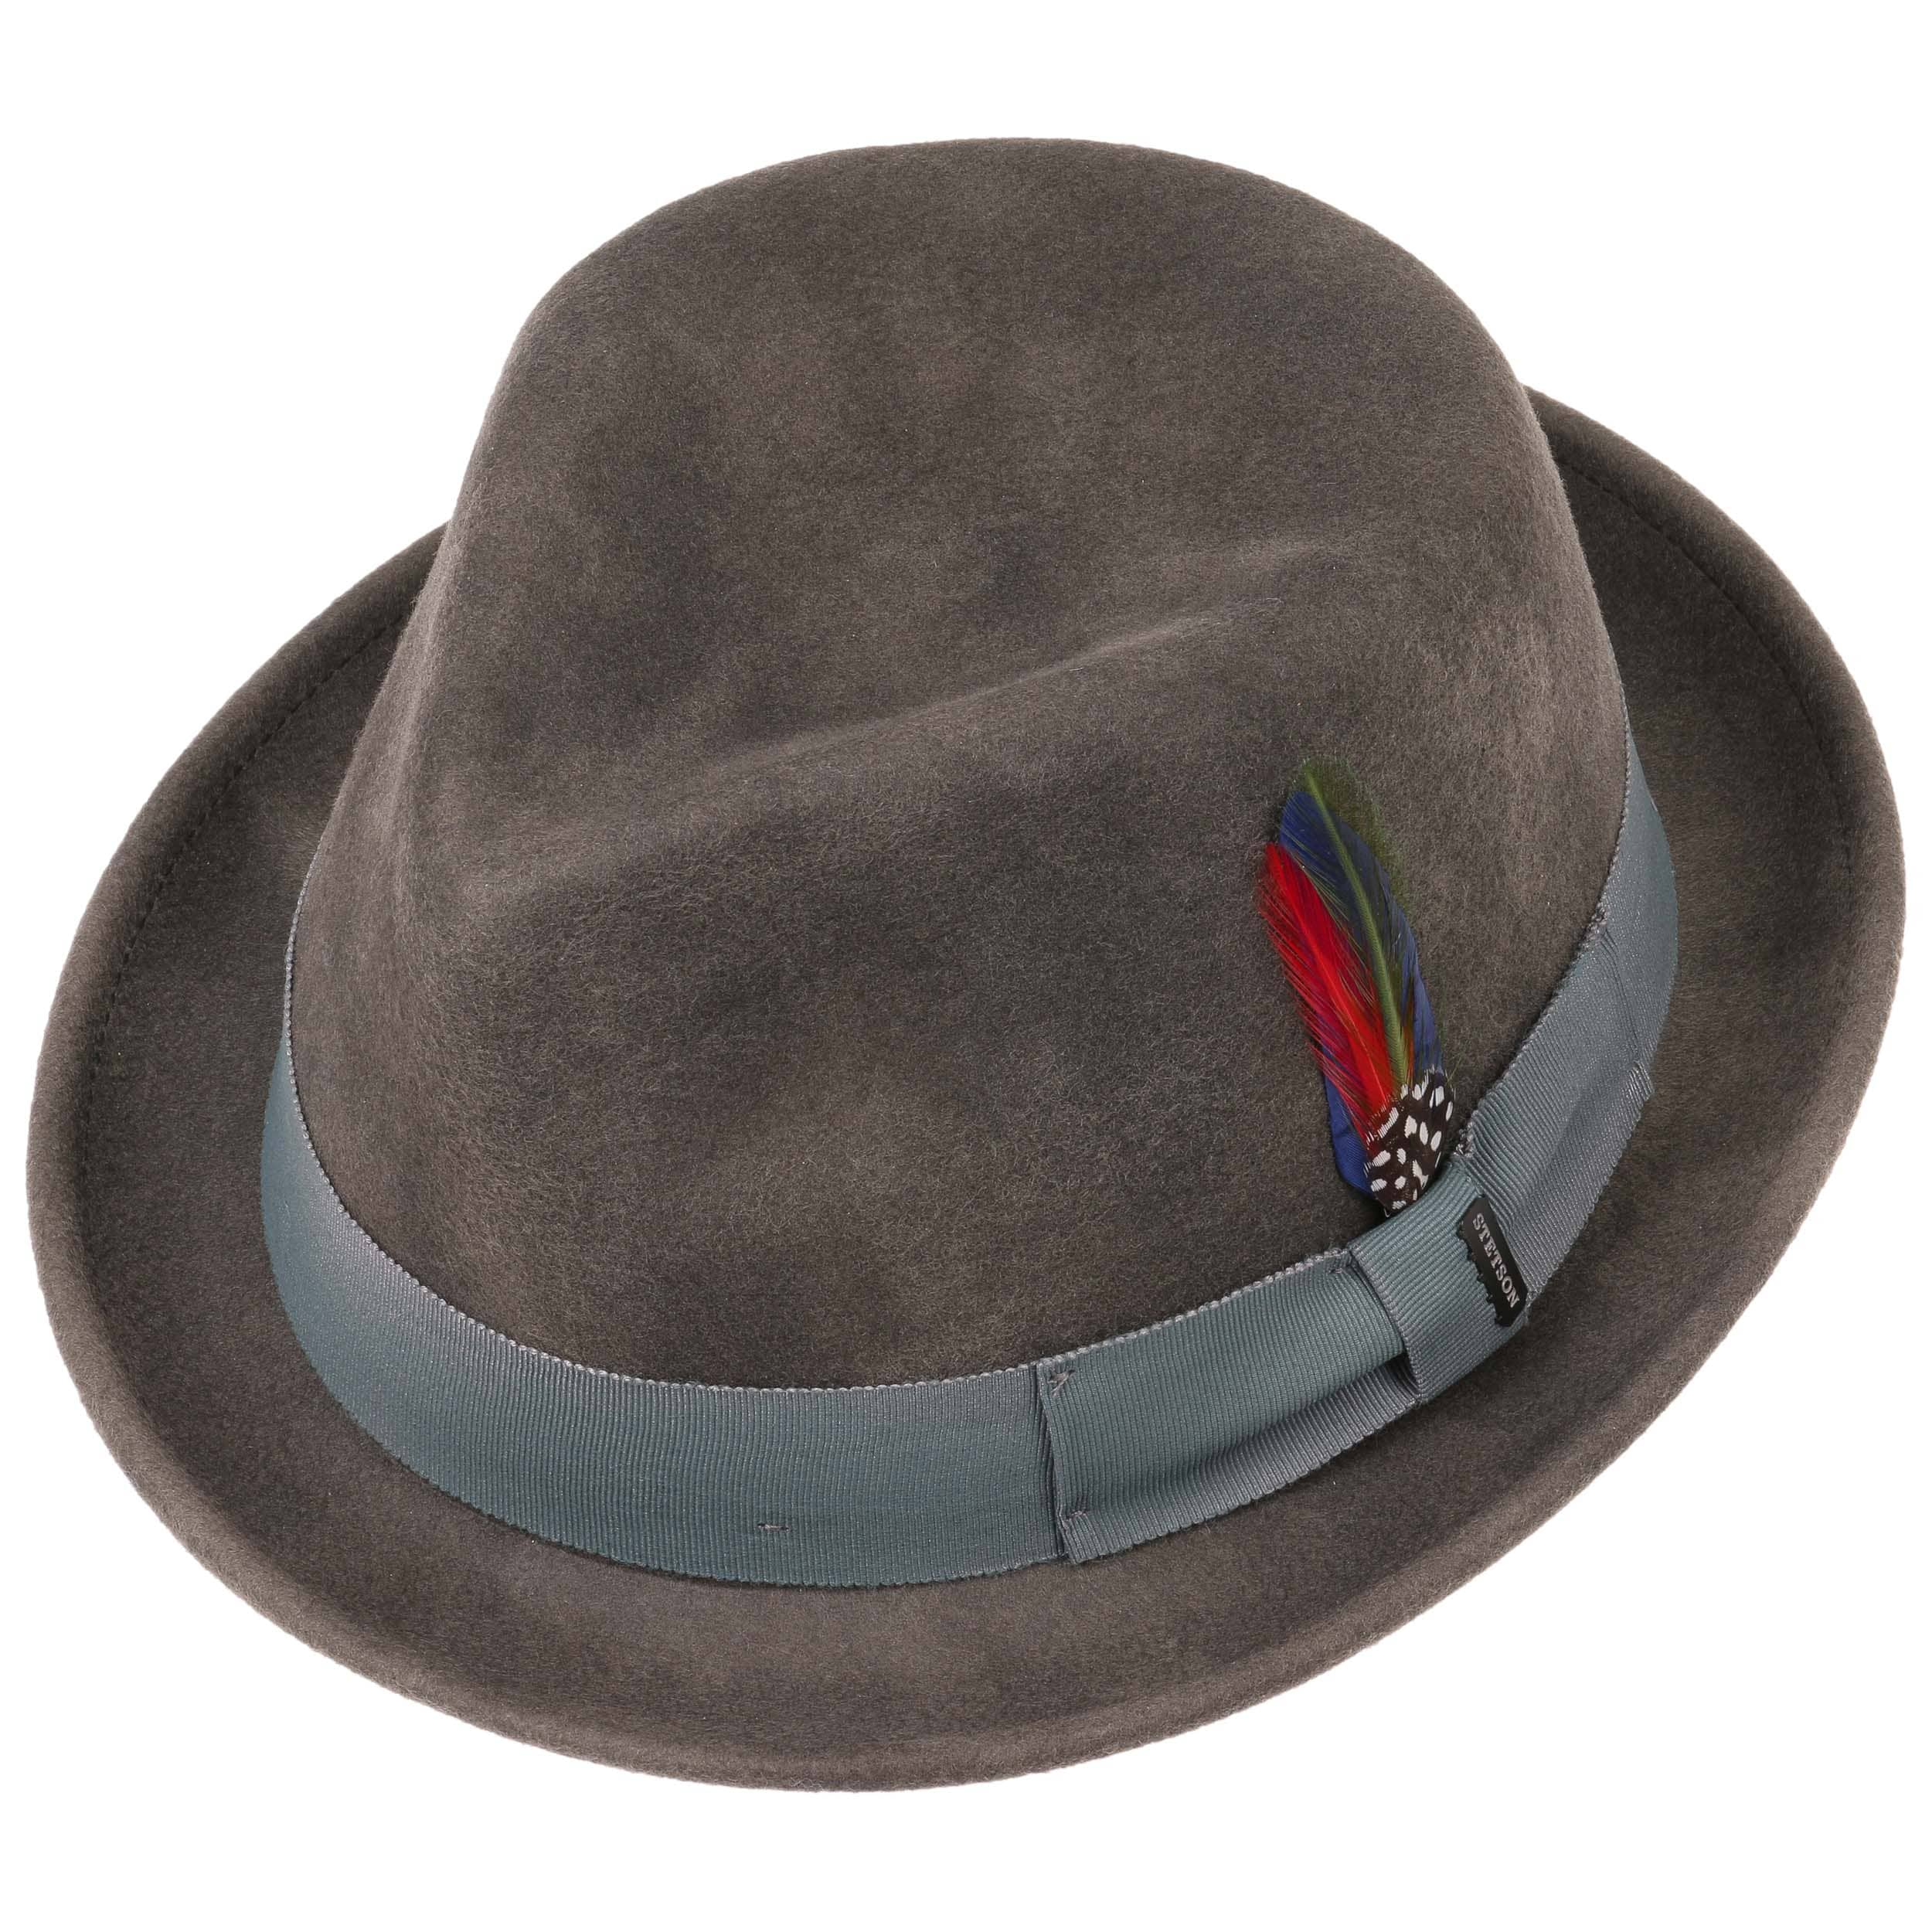 749253777bf Washed Look Fedora Felt Hat by Stetson - grey 1 ...